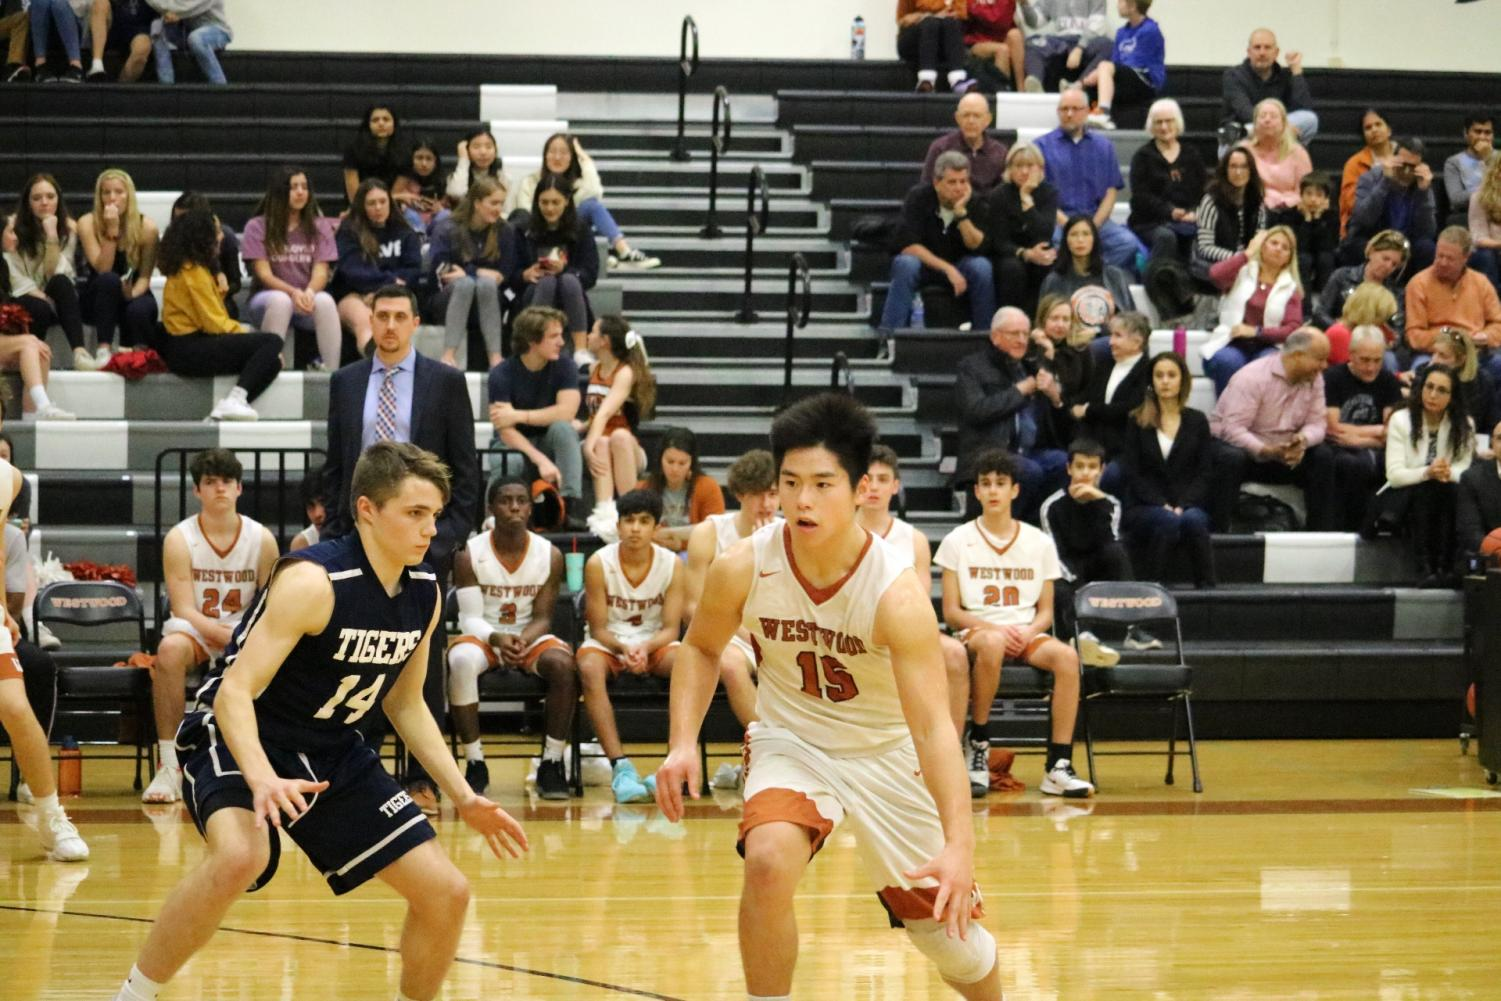 JV+Boys+Basketball+Falls+to+Stony+Point+67-61+in+Final+Home+Game+of+Season